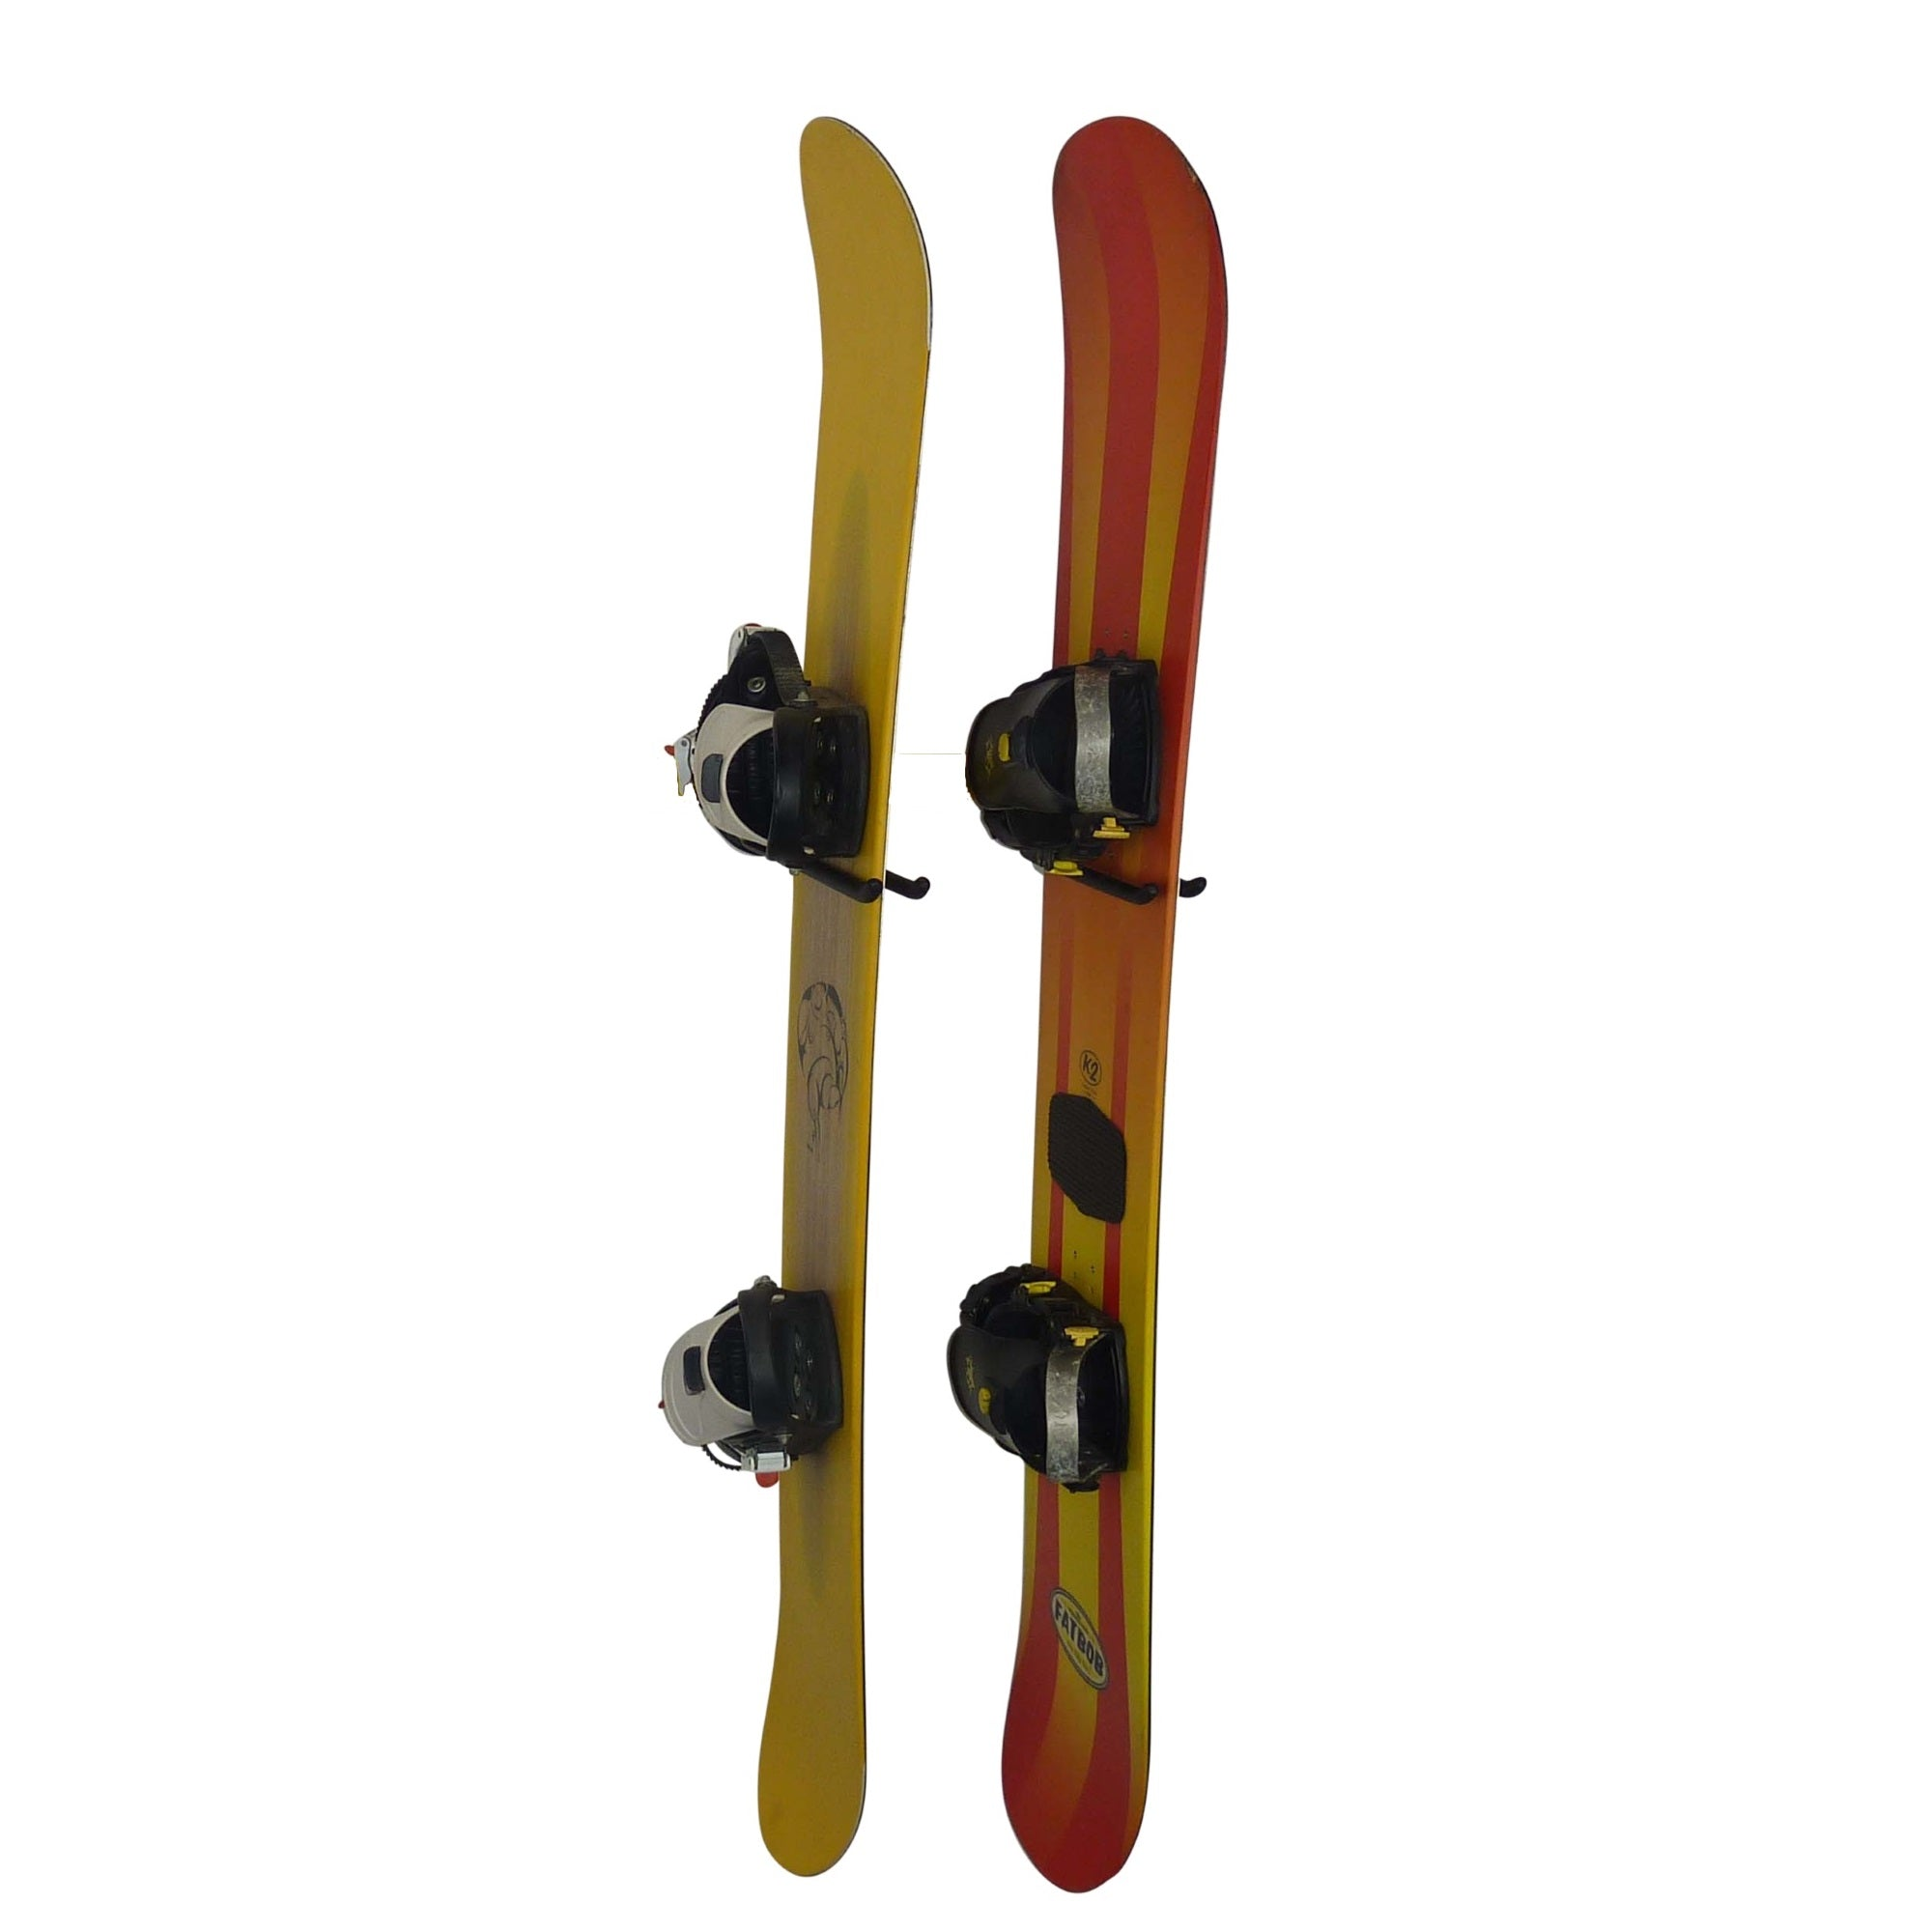 Snowboard Wall Mount - storage hook for 1 or 2  snowboards. GearHooks SBH1